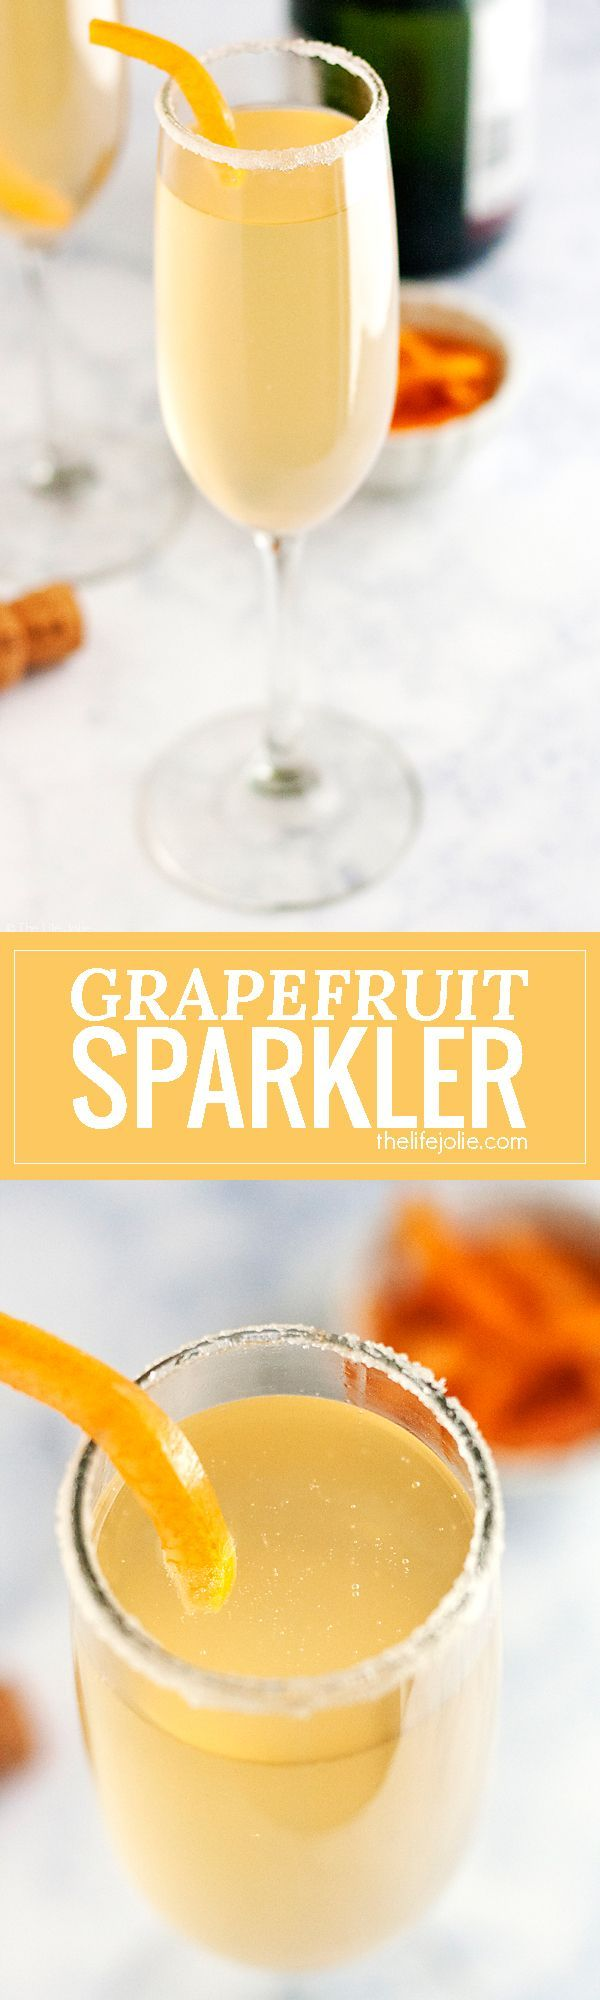 This Grapefruit Sparkler is a festive champagne cocktail! I love adult beverages featuring sparkling wine and this is simple to make and refreshing to drink at brunch or to ring in the New Year. This pretty drink will be a mainstay at your next girls nigh